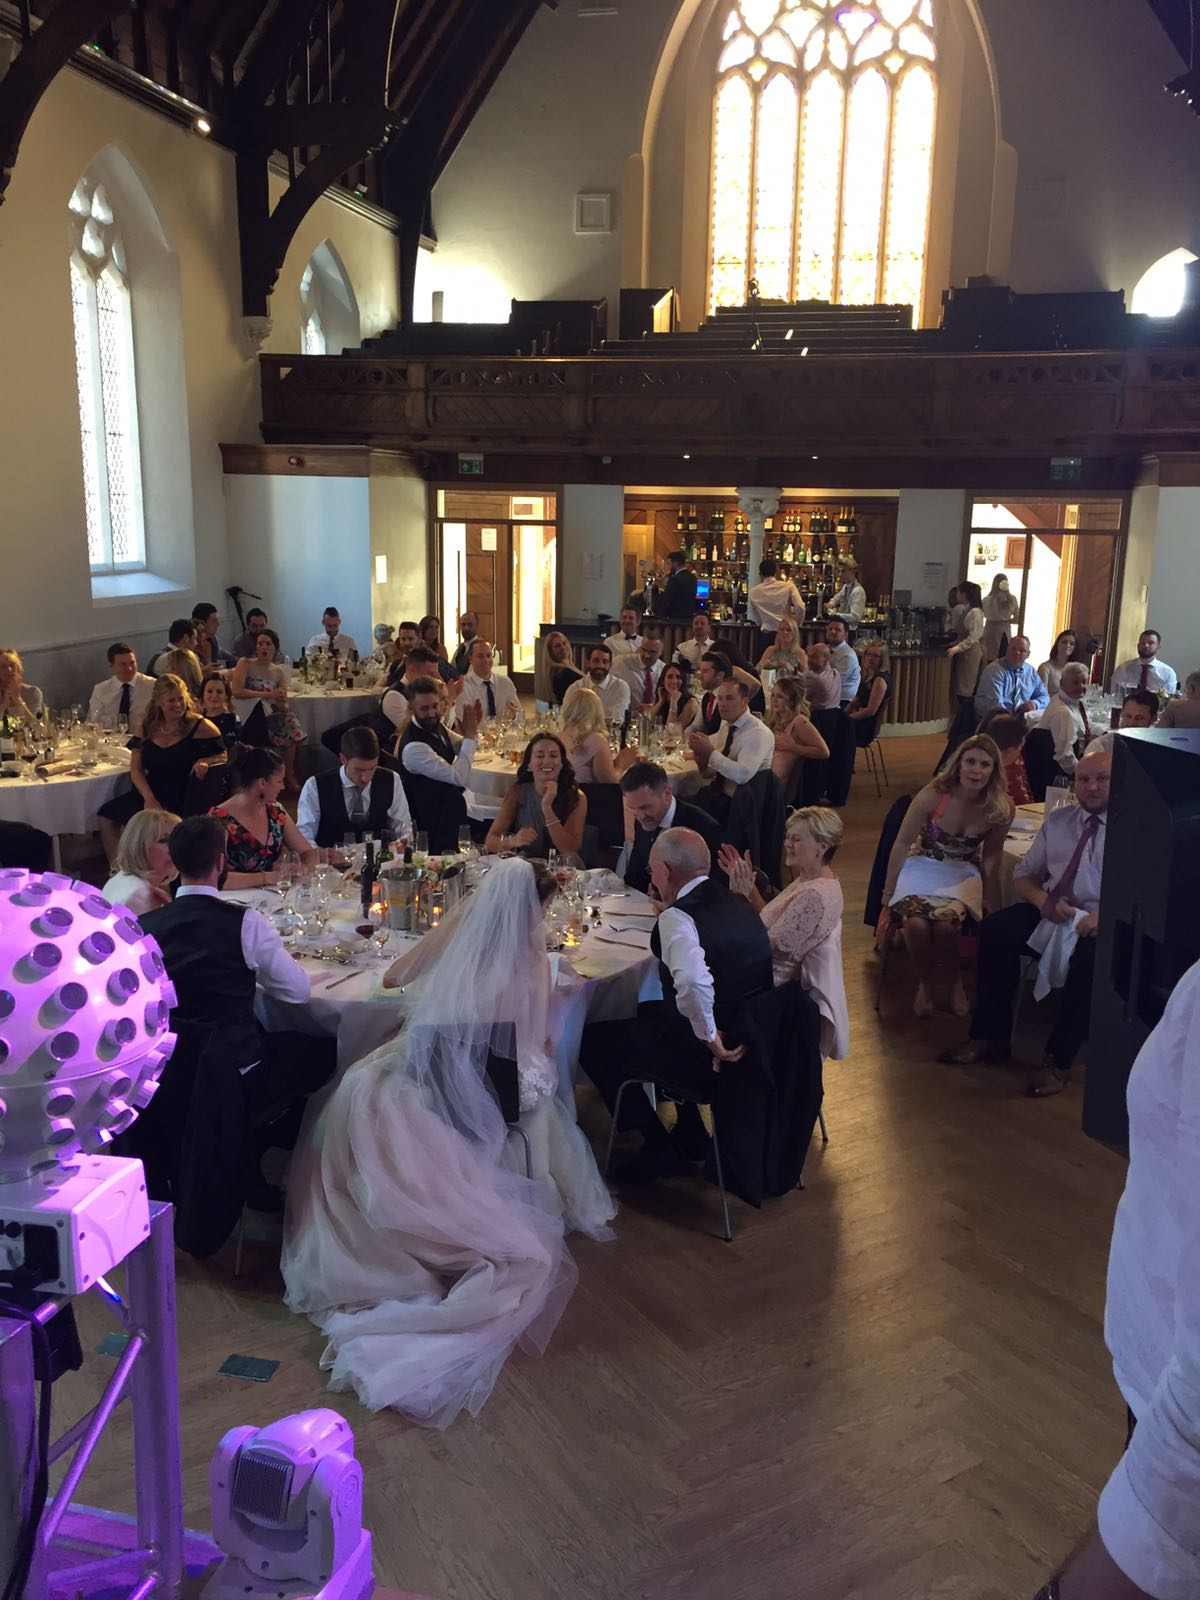 Cardiff city centre wedding in Cornerstone, hosted and catered by Spiros